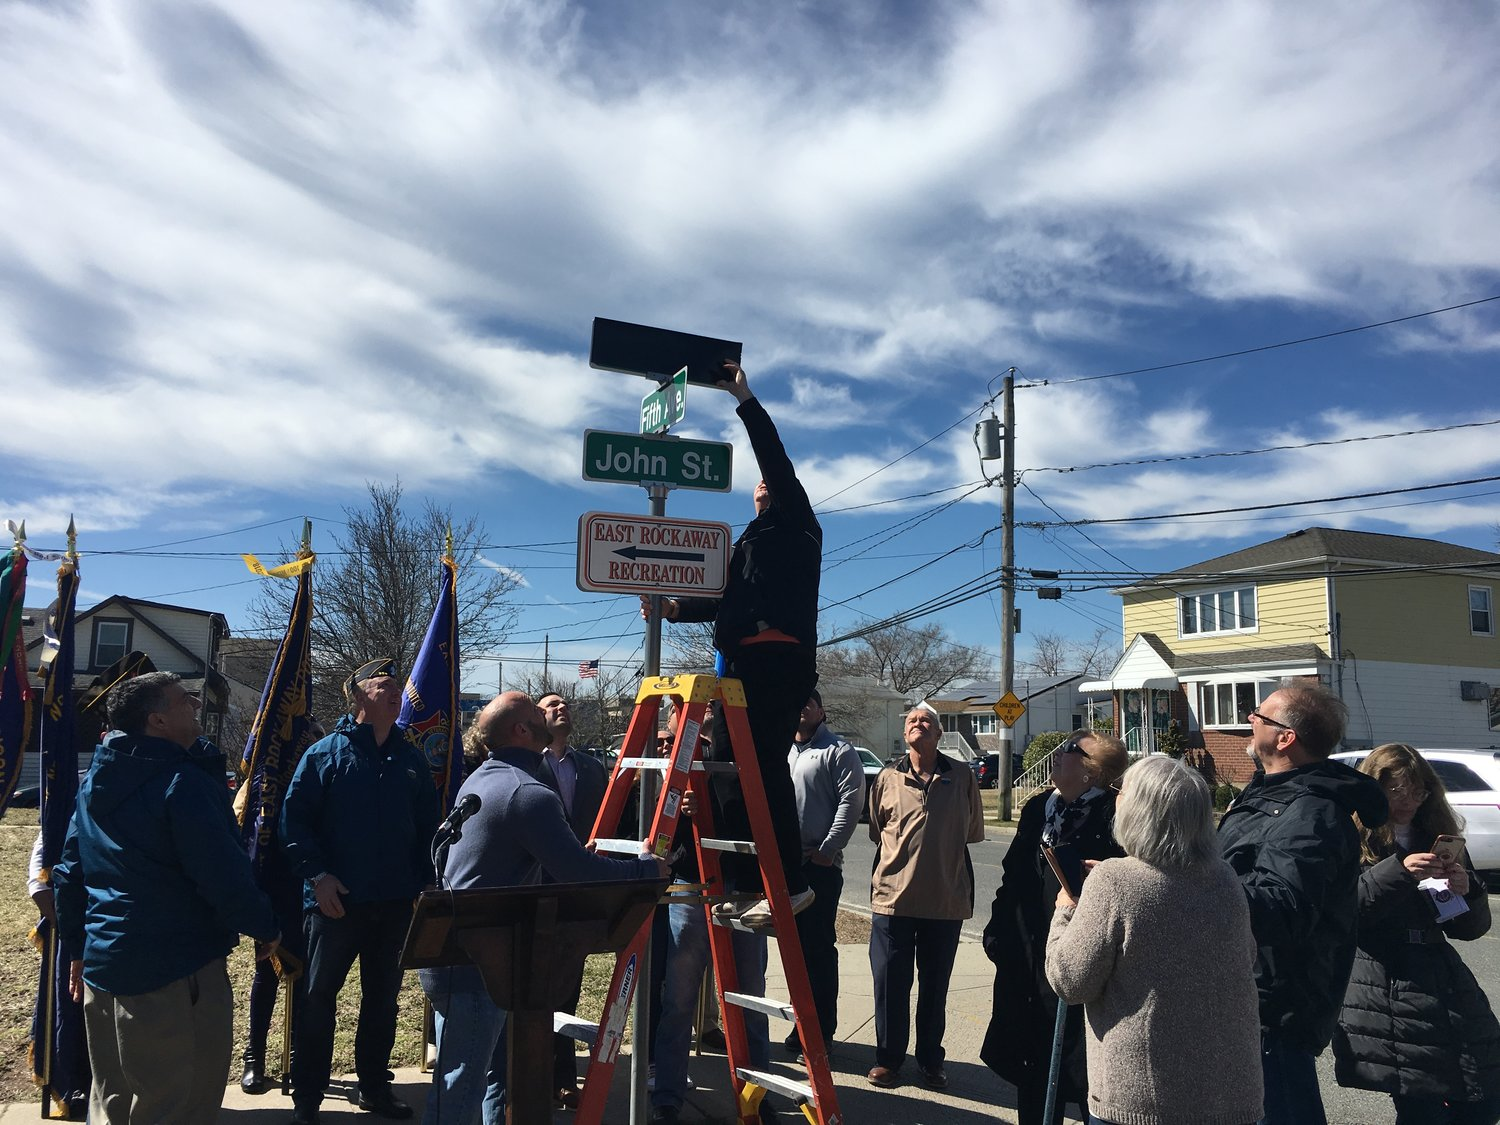 Street Named For E R Man Who Died In Shipwreck Herald Community Newspapers Www Liherald Com John rock inc., coatesville, pa. herald community newspapers